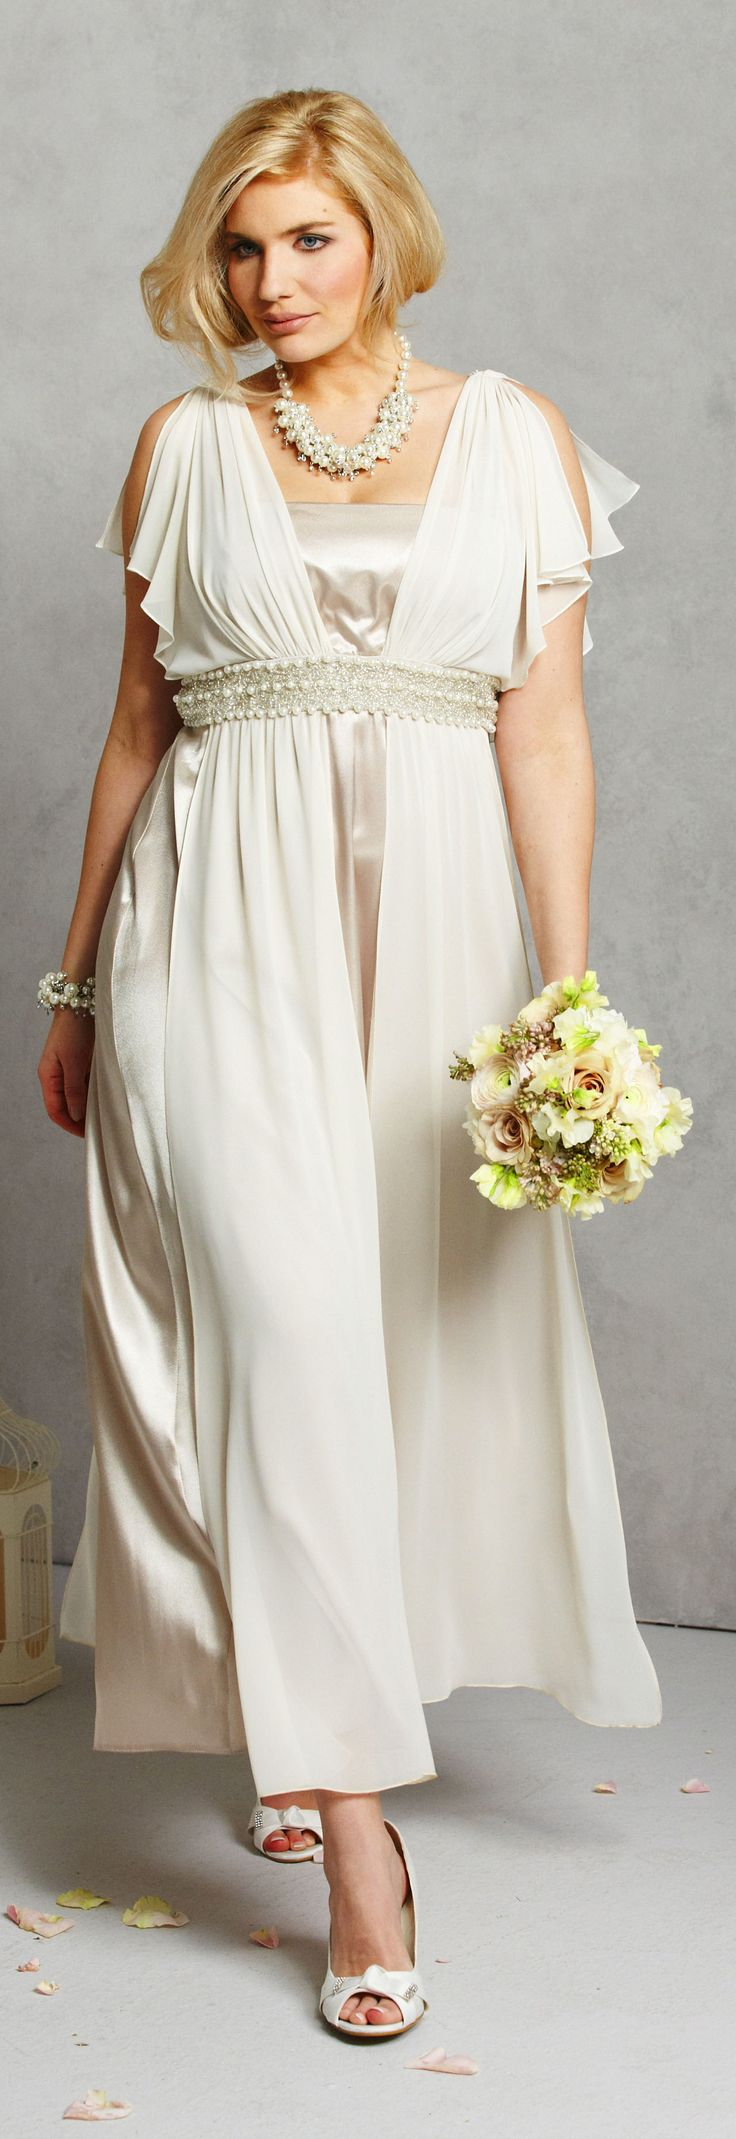 Wedding dresses for older boho brides - click through to read at http://boomerinas.com/2012/12/6-vintage-hippie-wedding-dress-ideas-for-your-second-marriage/